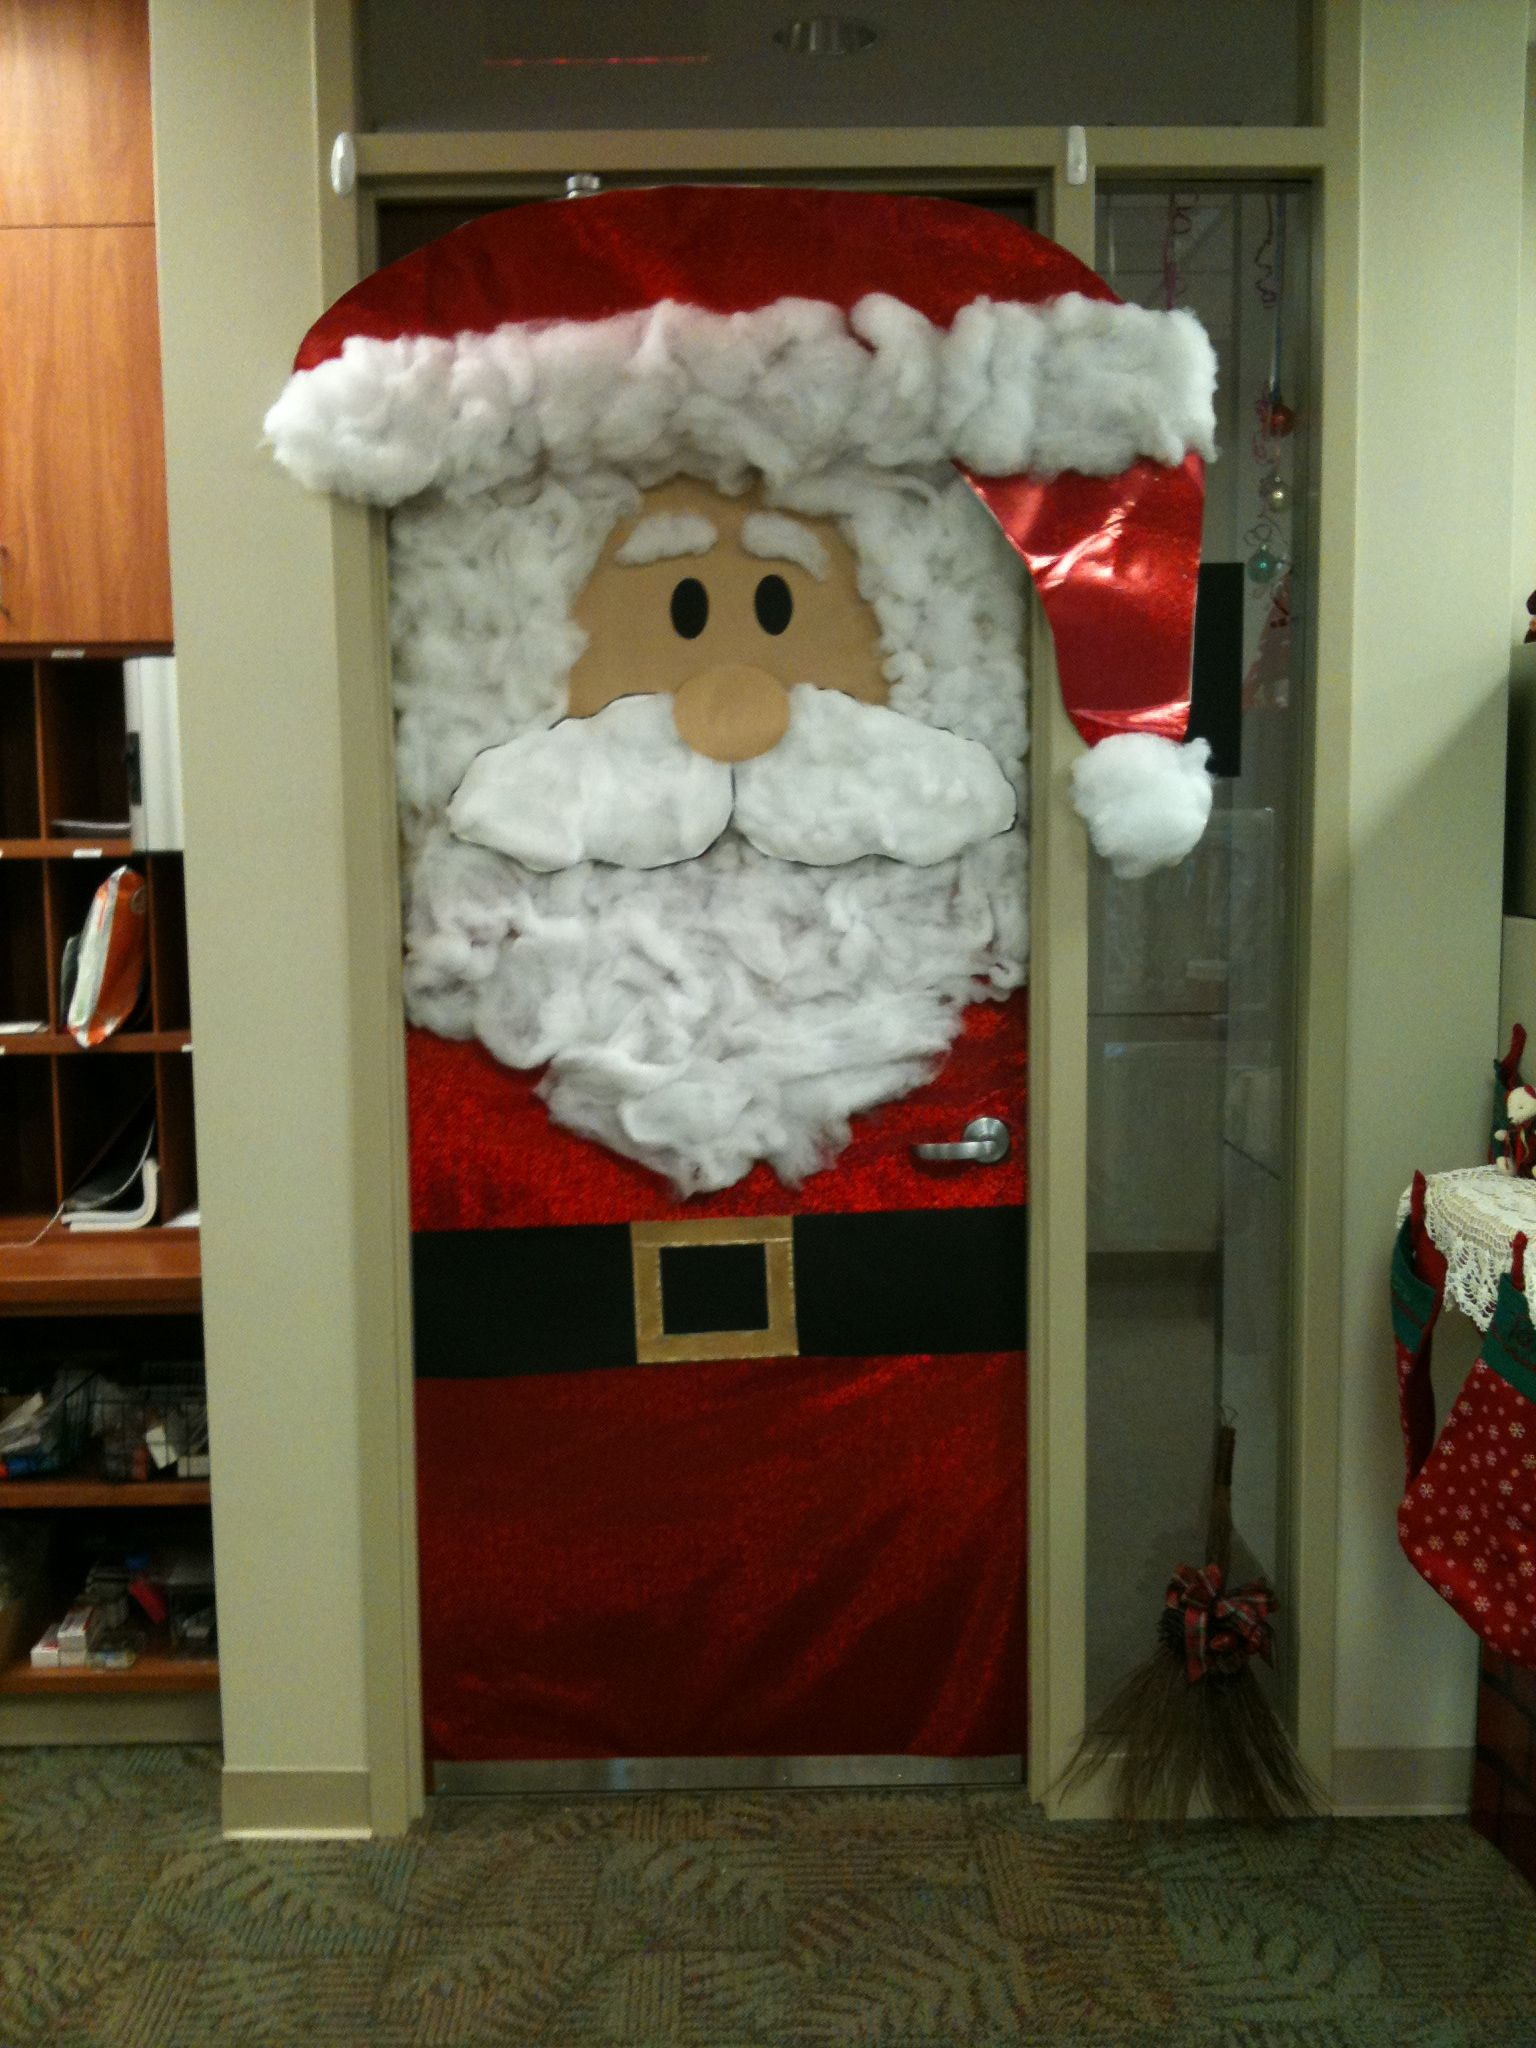 Holiday door decor! This was at work.